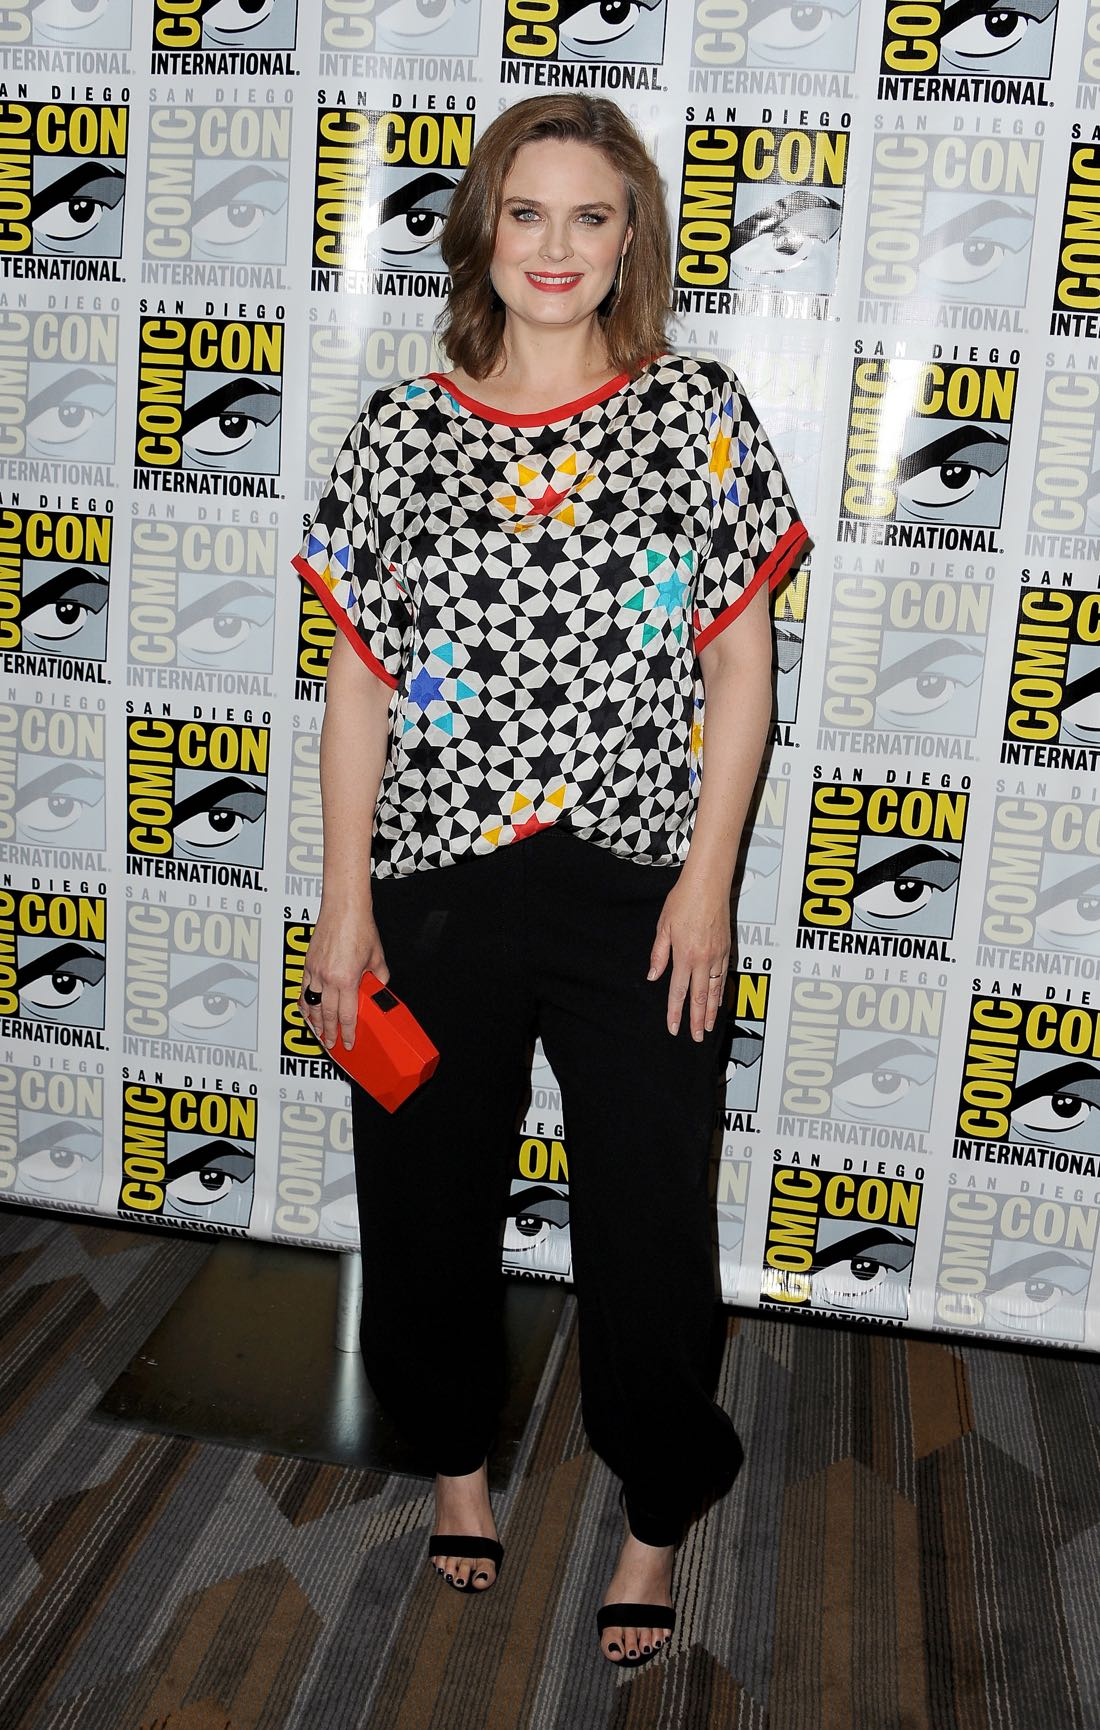 FOX FANFARE AT SAN DIEGO COMIC-CON © 2016: L-R: BONES cast member Emily Deschanel during the BONES press room on Friday, July 22 at the FOX FANFARE AT SAN DIEGO COMIC-CON © 2016. CR: Scott Kirkland/FOX © 2016 FOX BROADCASTING